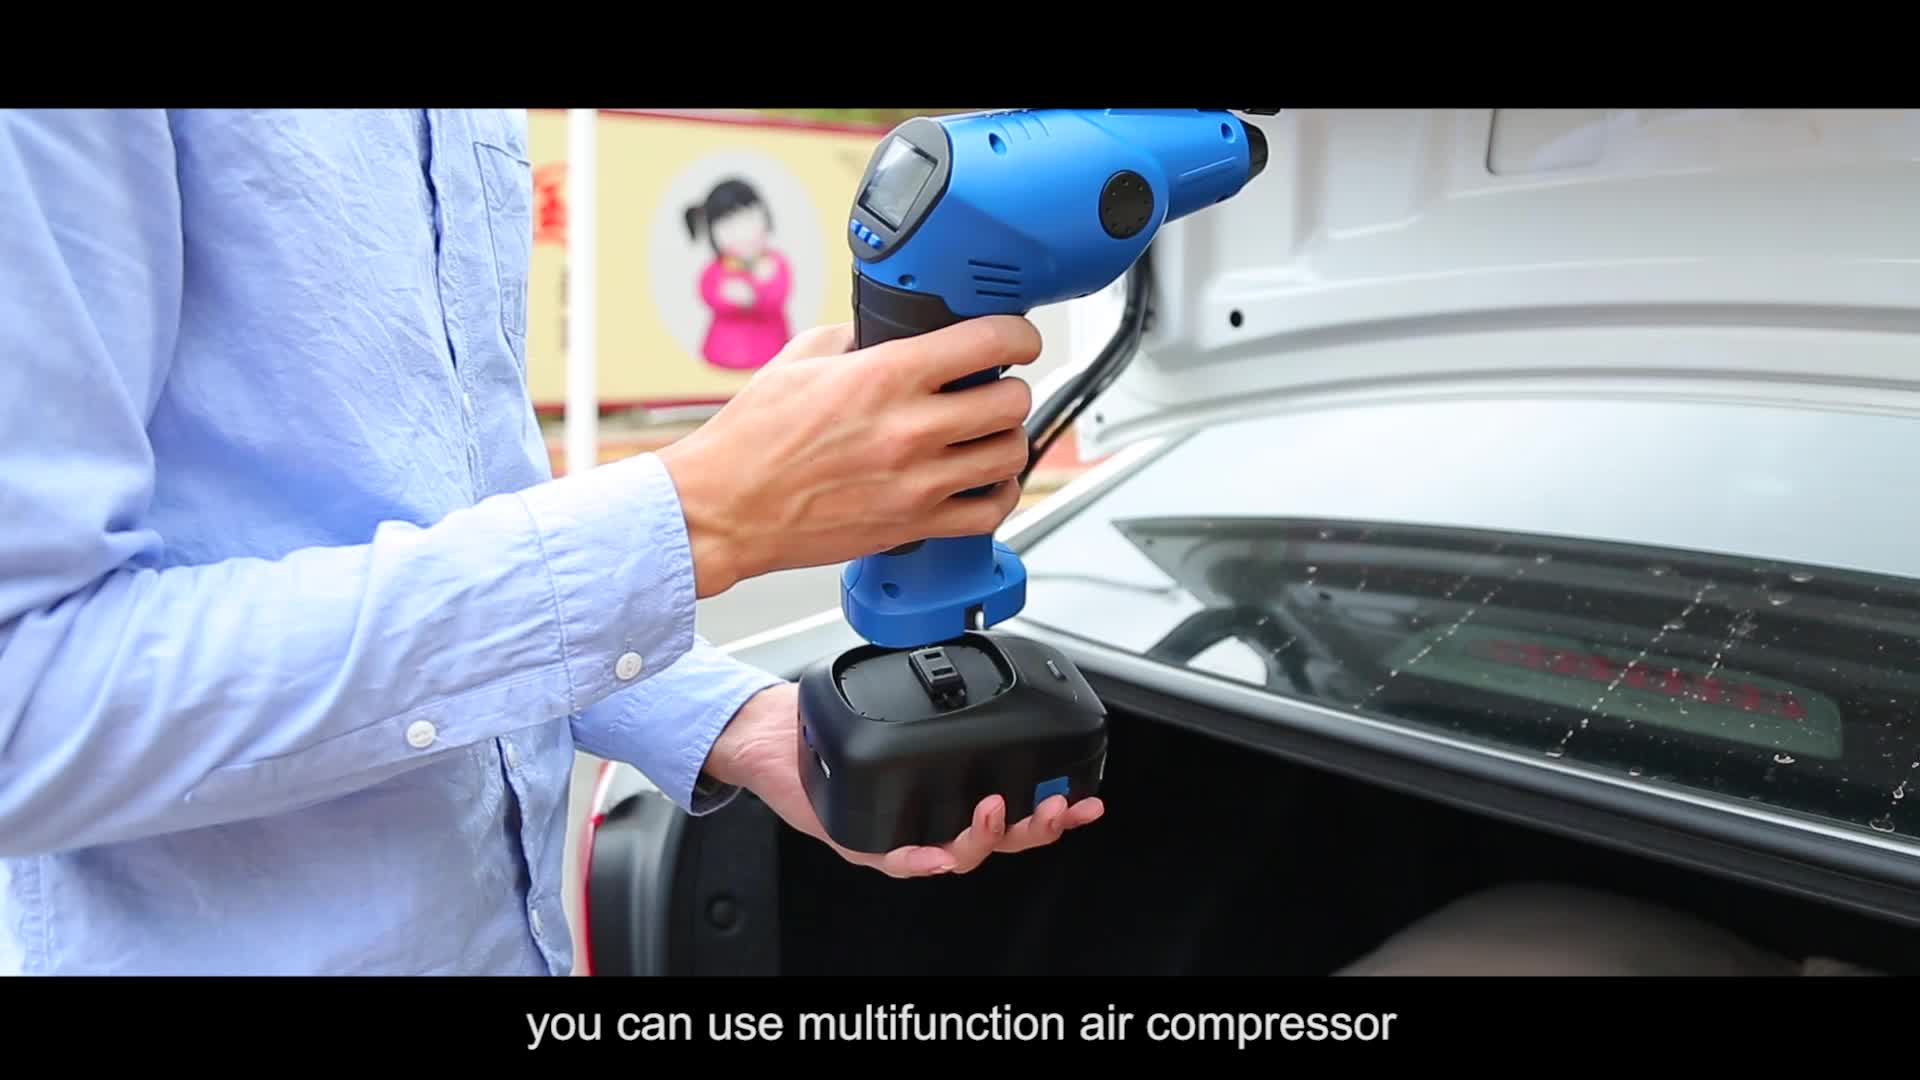 HOT SALE digital portable cordless car air compressor air inflator pump  rechargeable multifunctionable 12V 150PSI